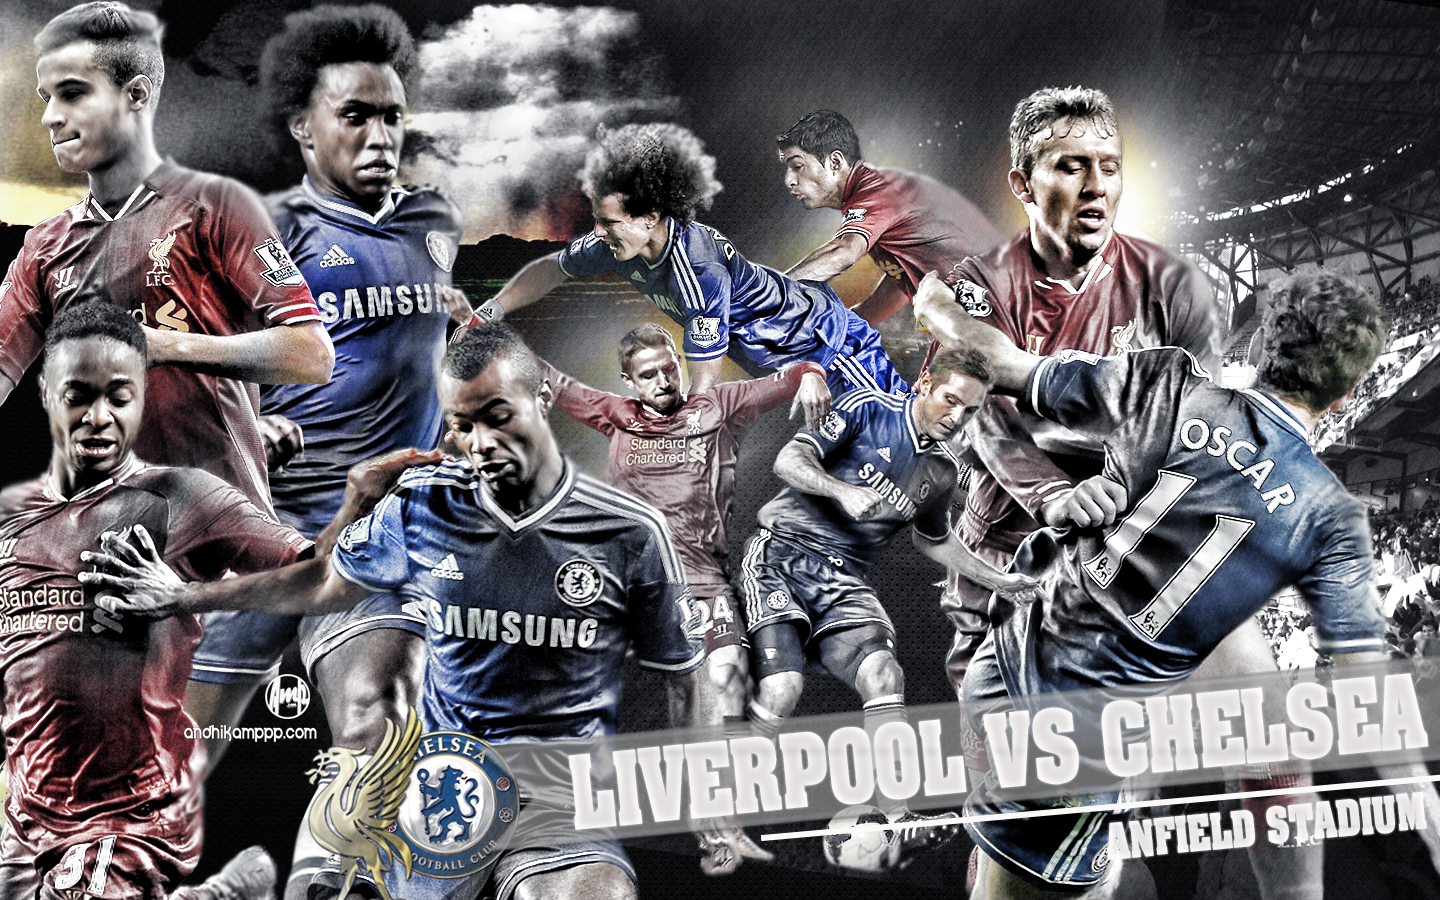 Liverpool vs chelsea epl match preview 11th may online stream